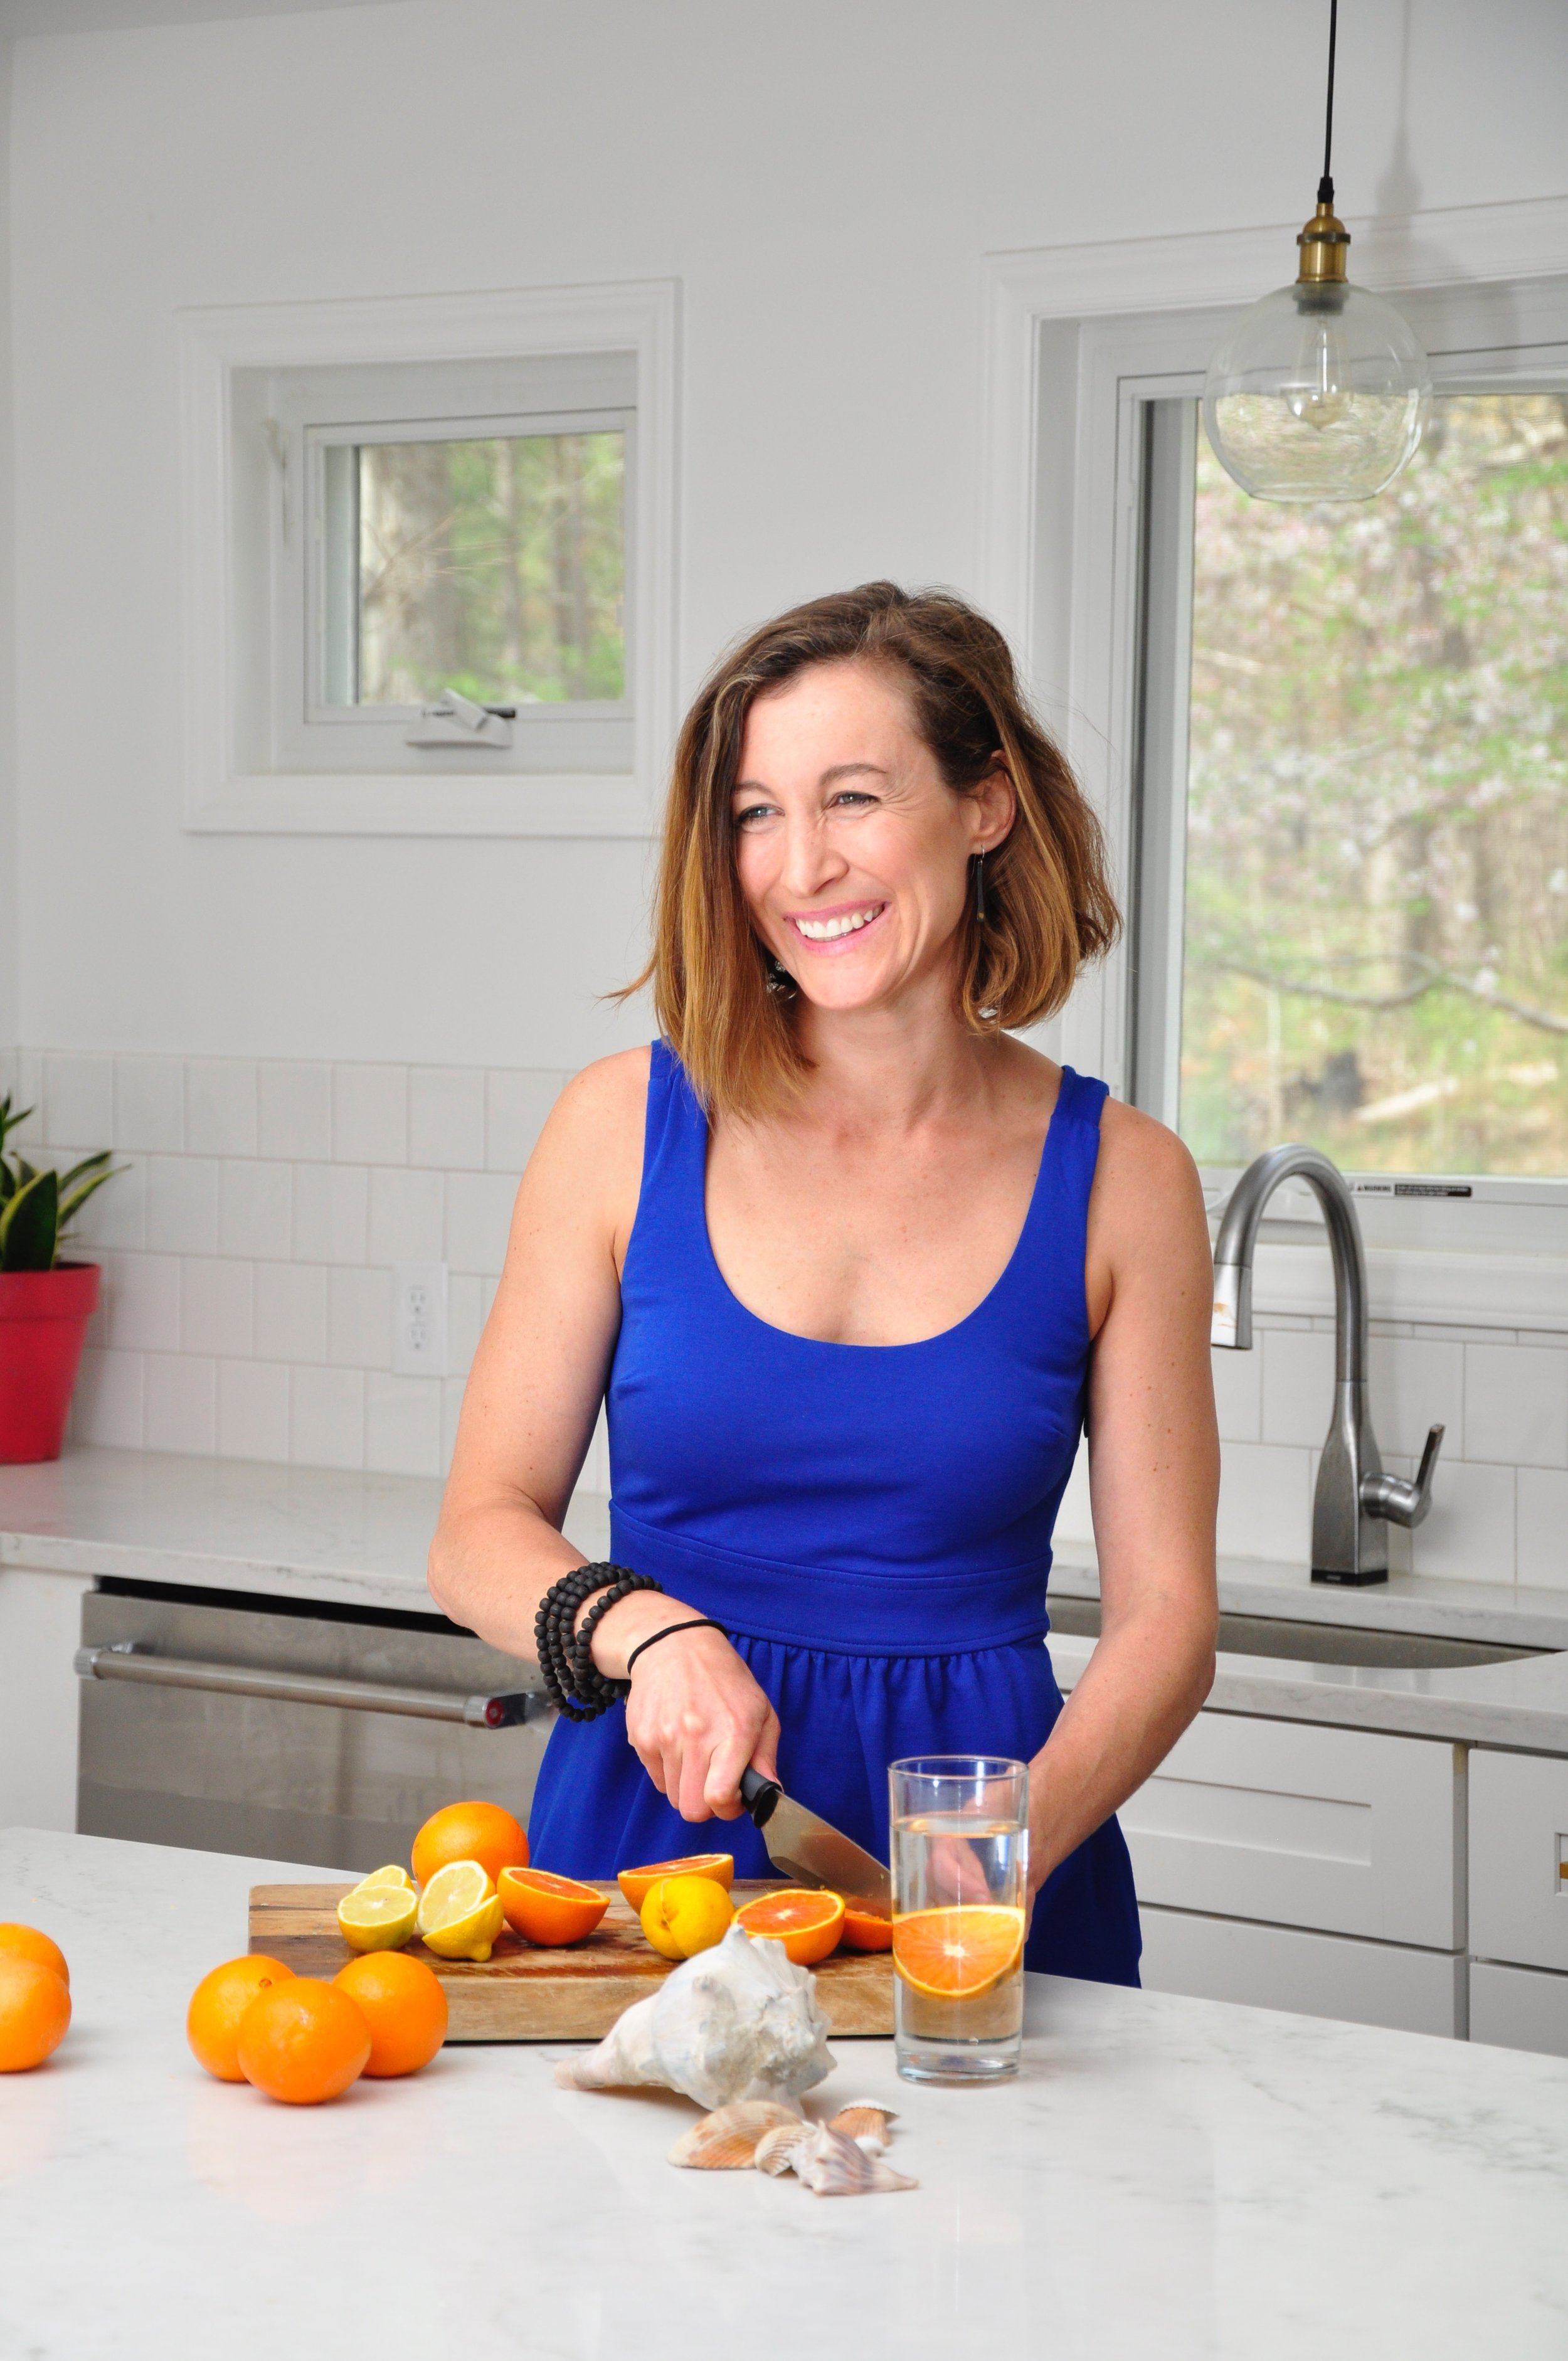 Sarah Smith is a personal trainer and lifestyle coach working with busy women in-person and online to help them feel confident and content in their bodies and their lives. -